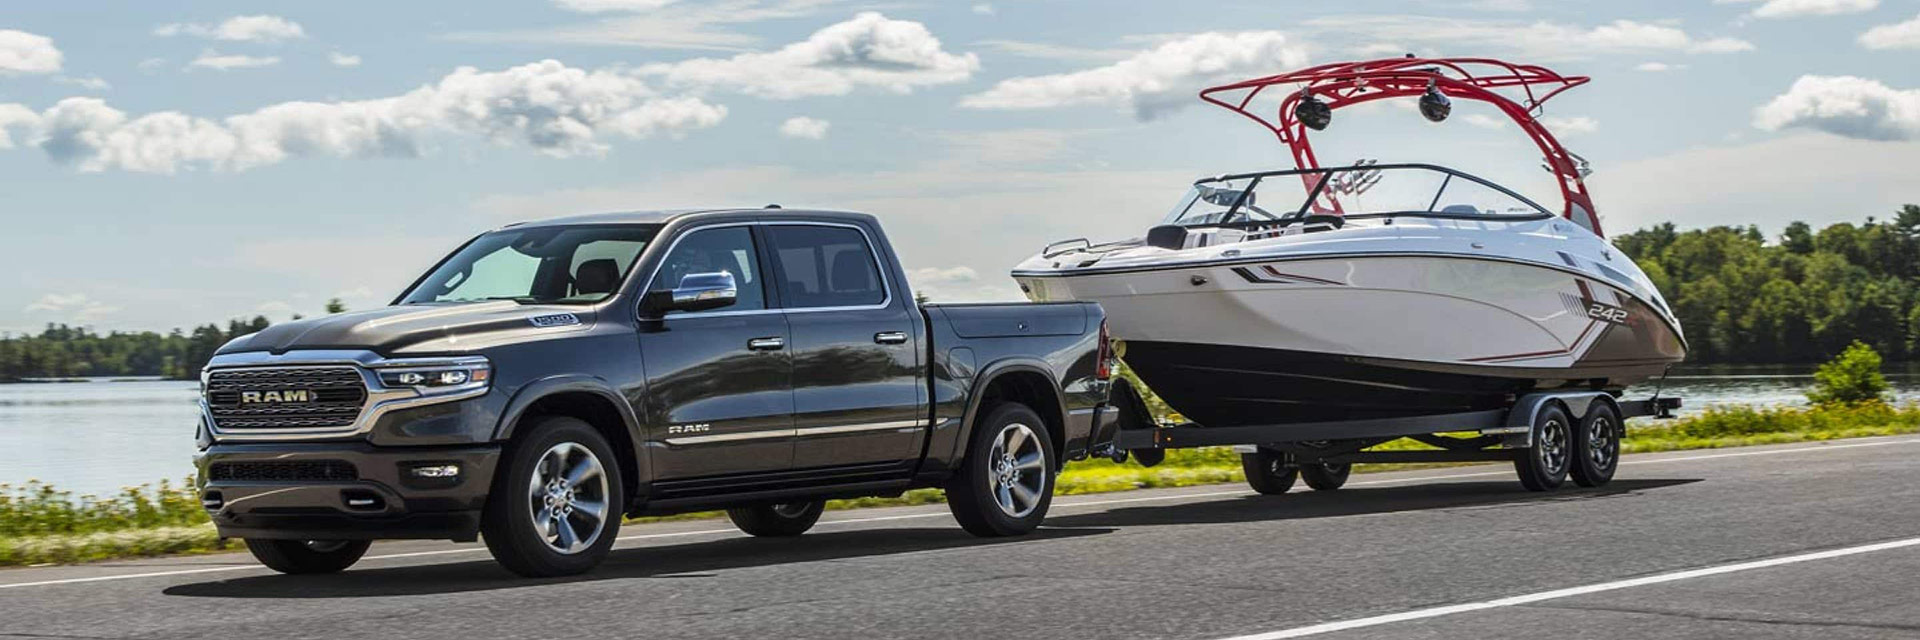 RAM 1500 On Roadway Towing Boat